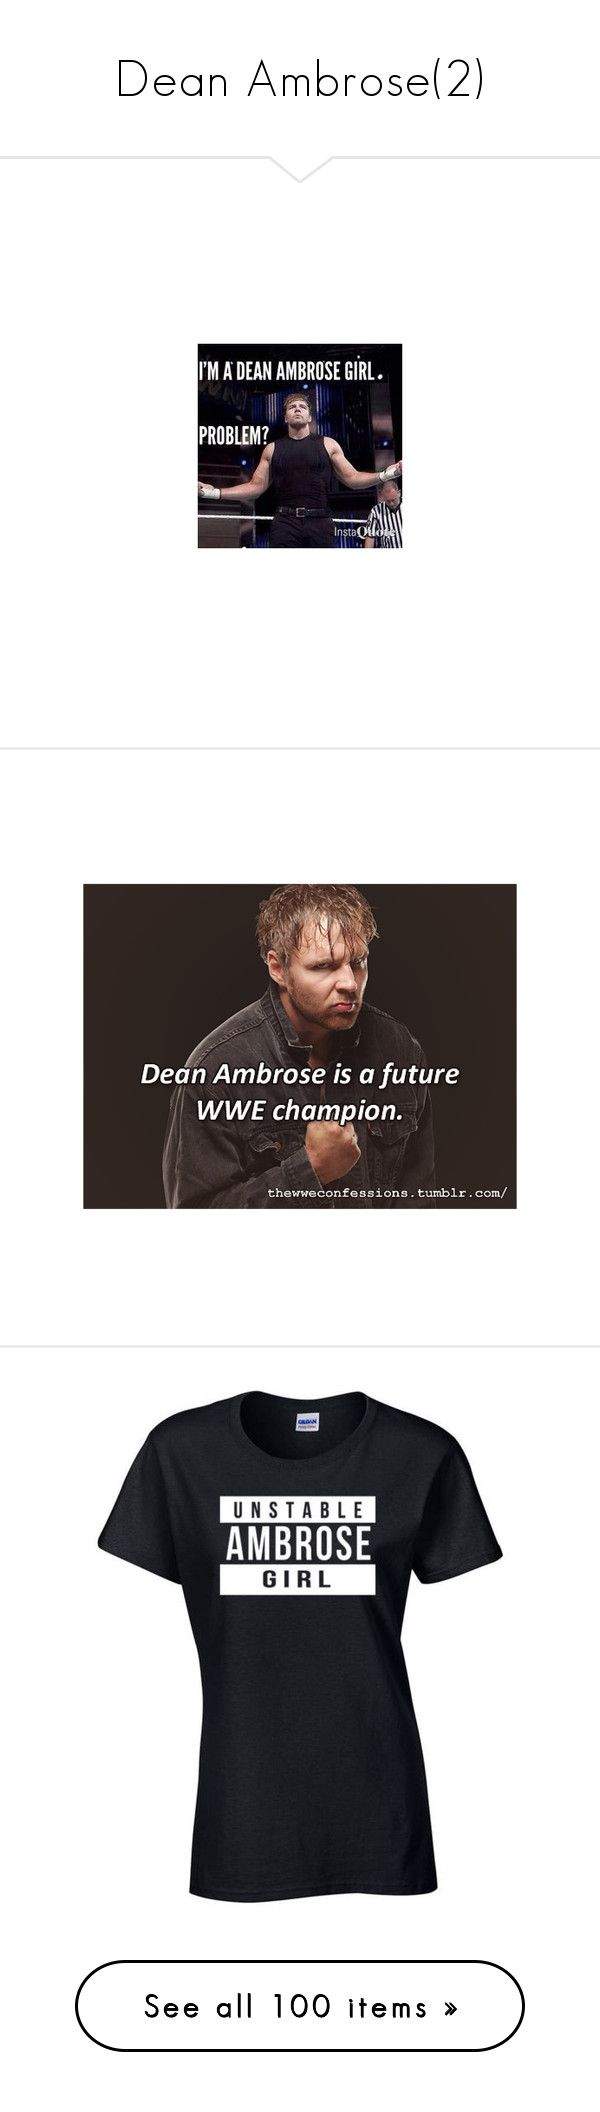 """Dean Ambrose(2)"" by jamiehemmings19 ❤ liked on Polyvore featuring wwe, dean ambrose, tops, t-shirts, wwe tops, wwe tee, crewneck t shirt, sport top, crewneck tee and crew-neck tops"